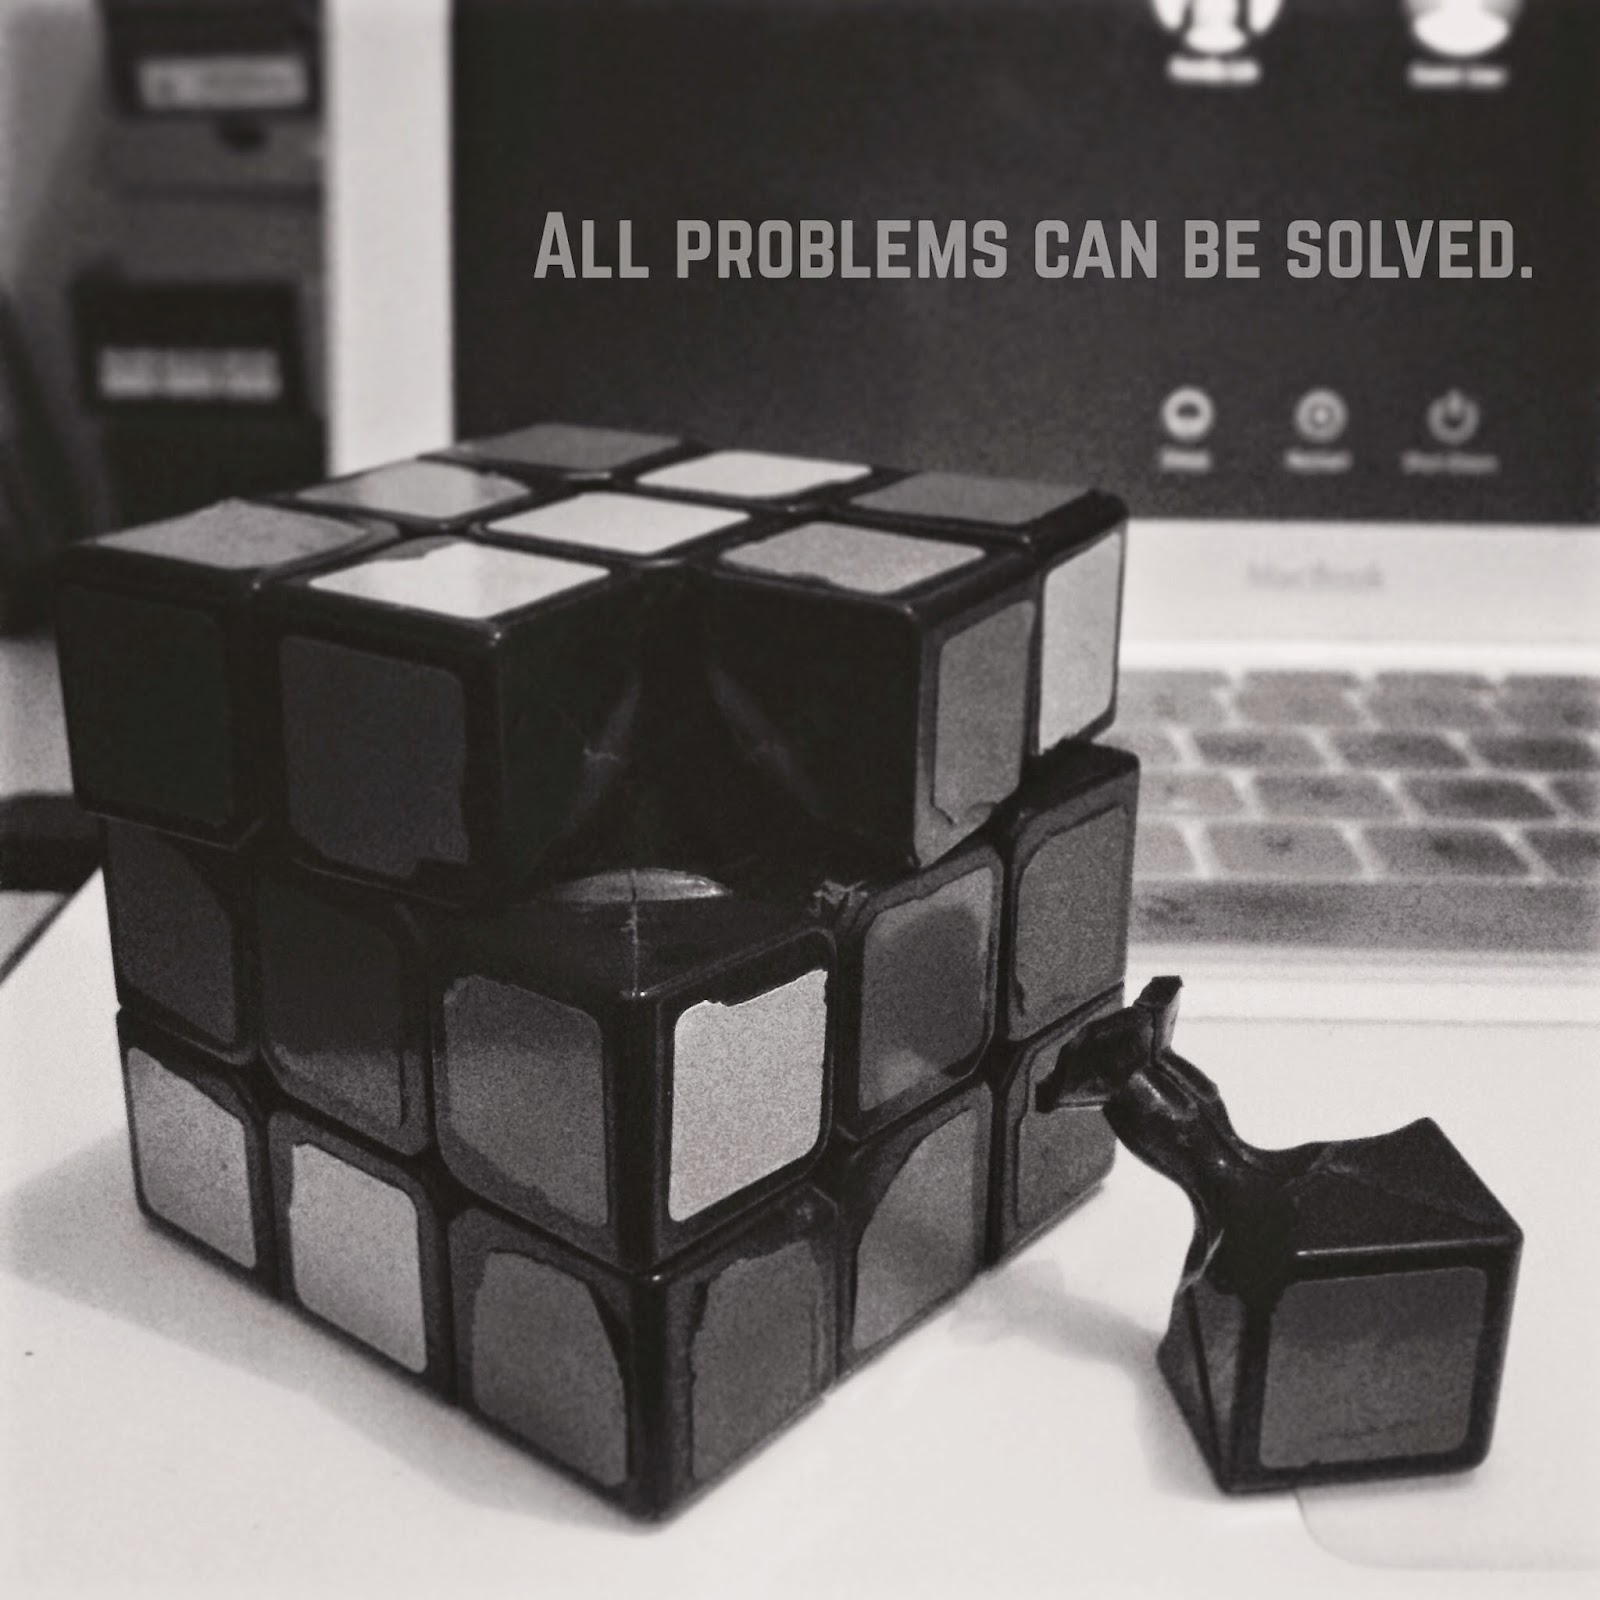 All problems can be solved